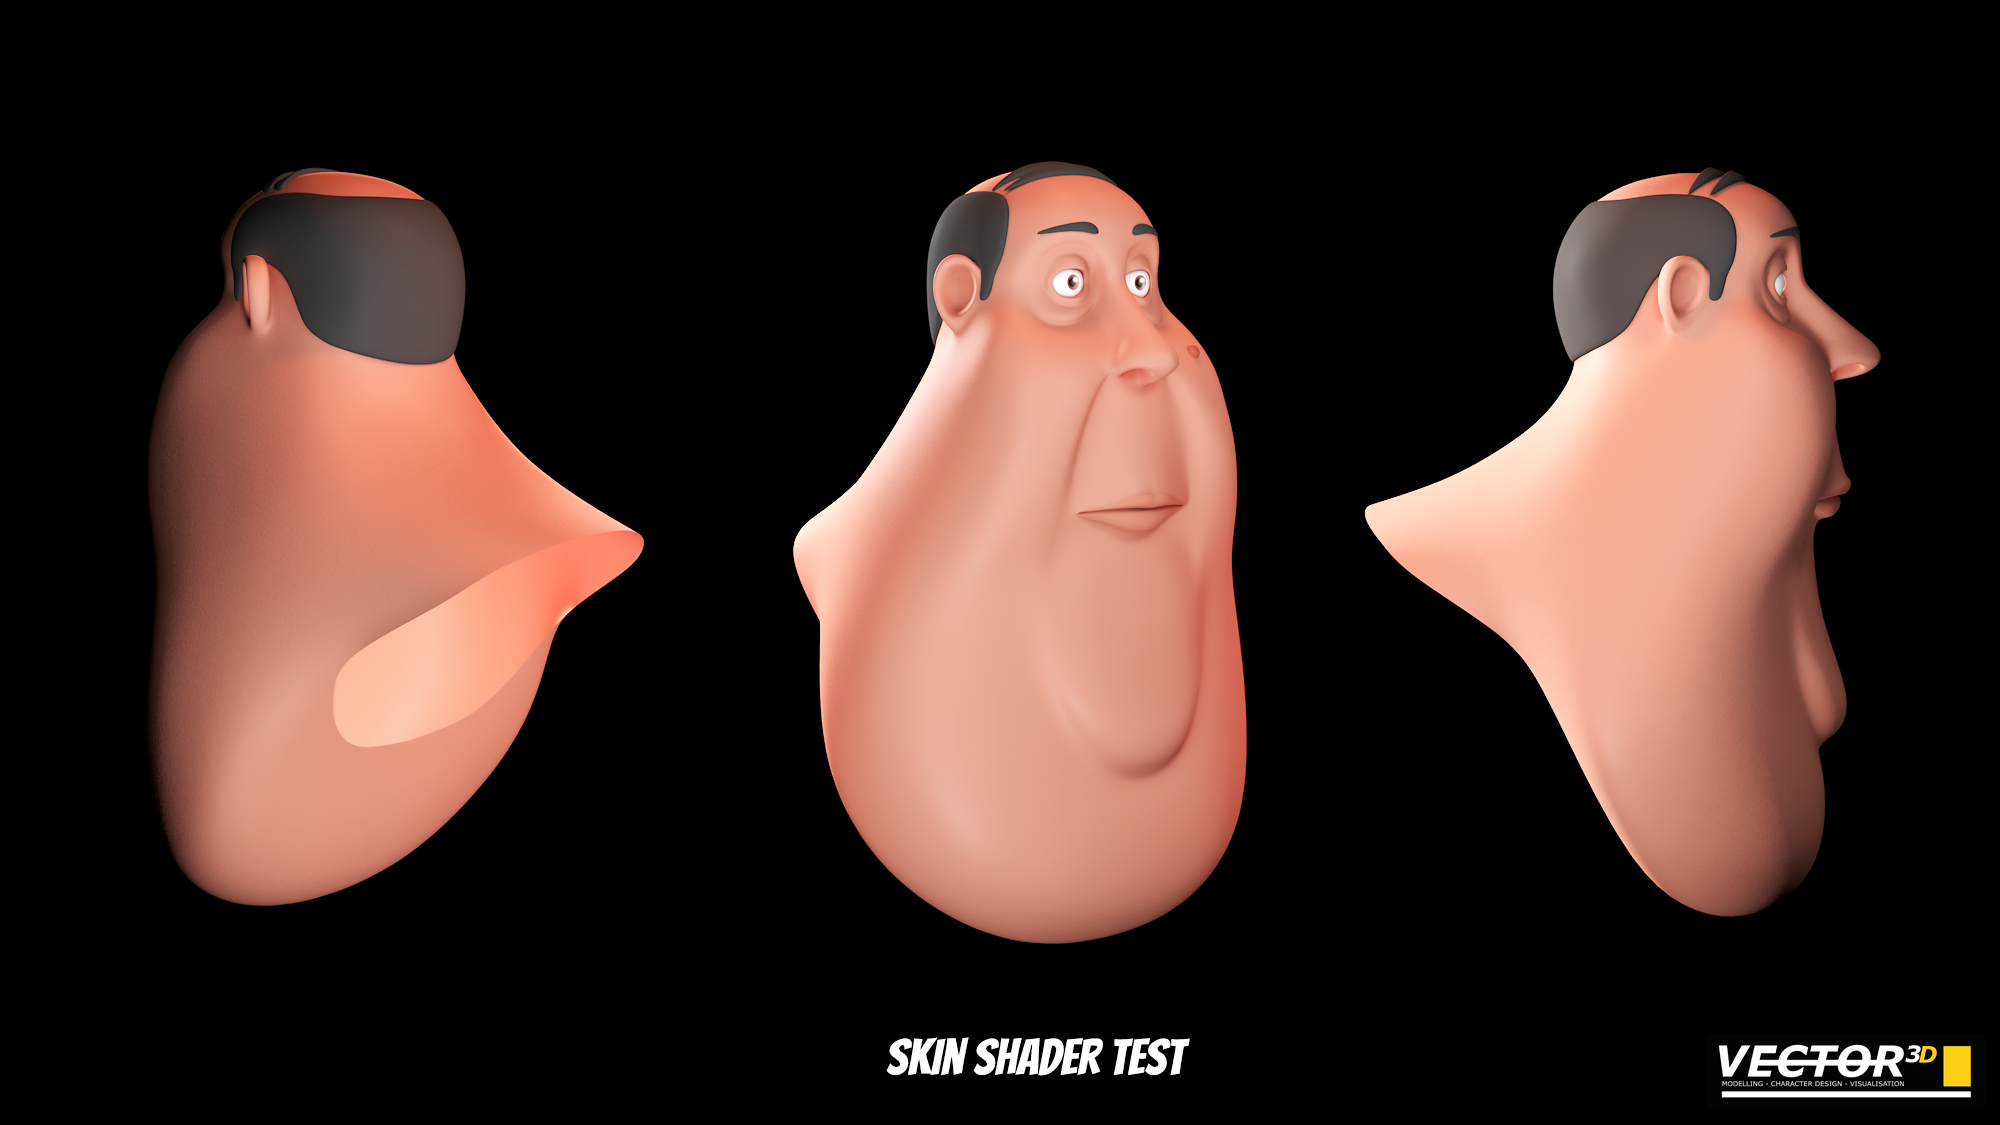 fatty_wip_skin_shader_test_by_vector3d-d